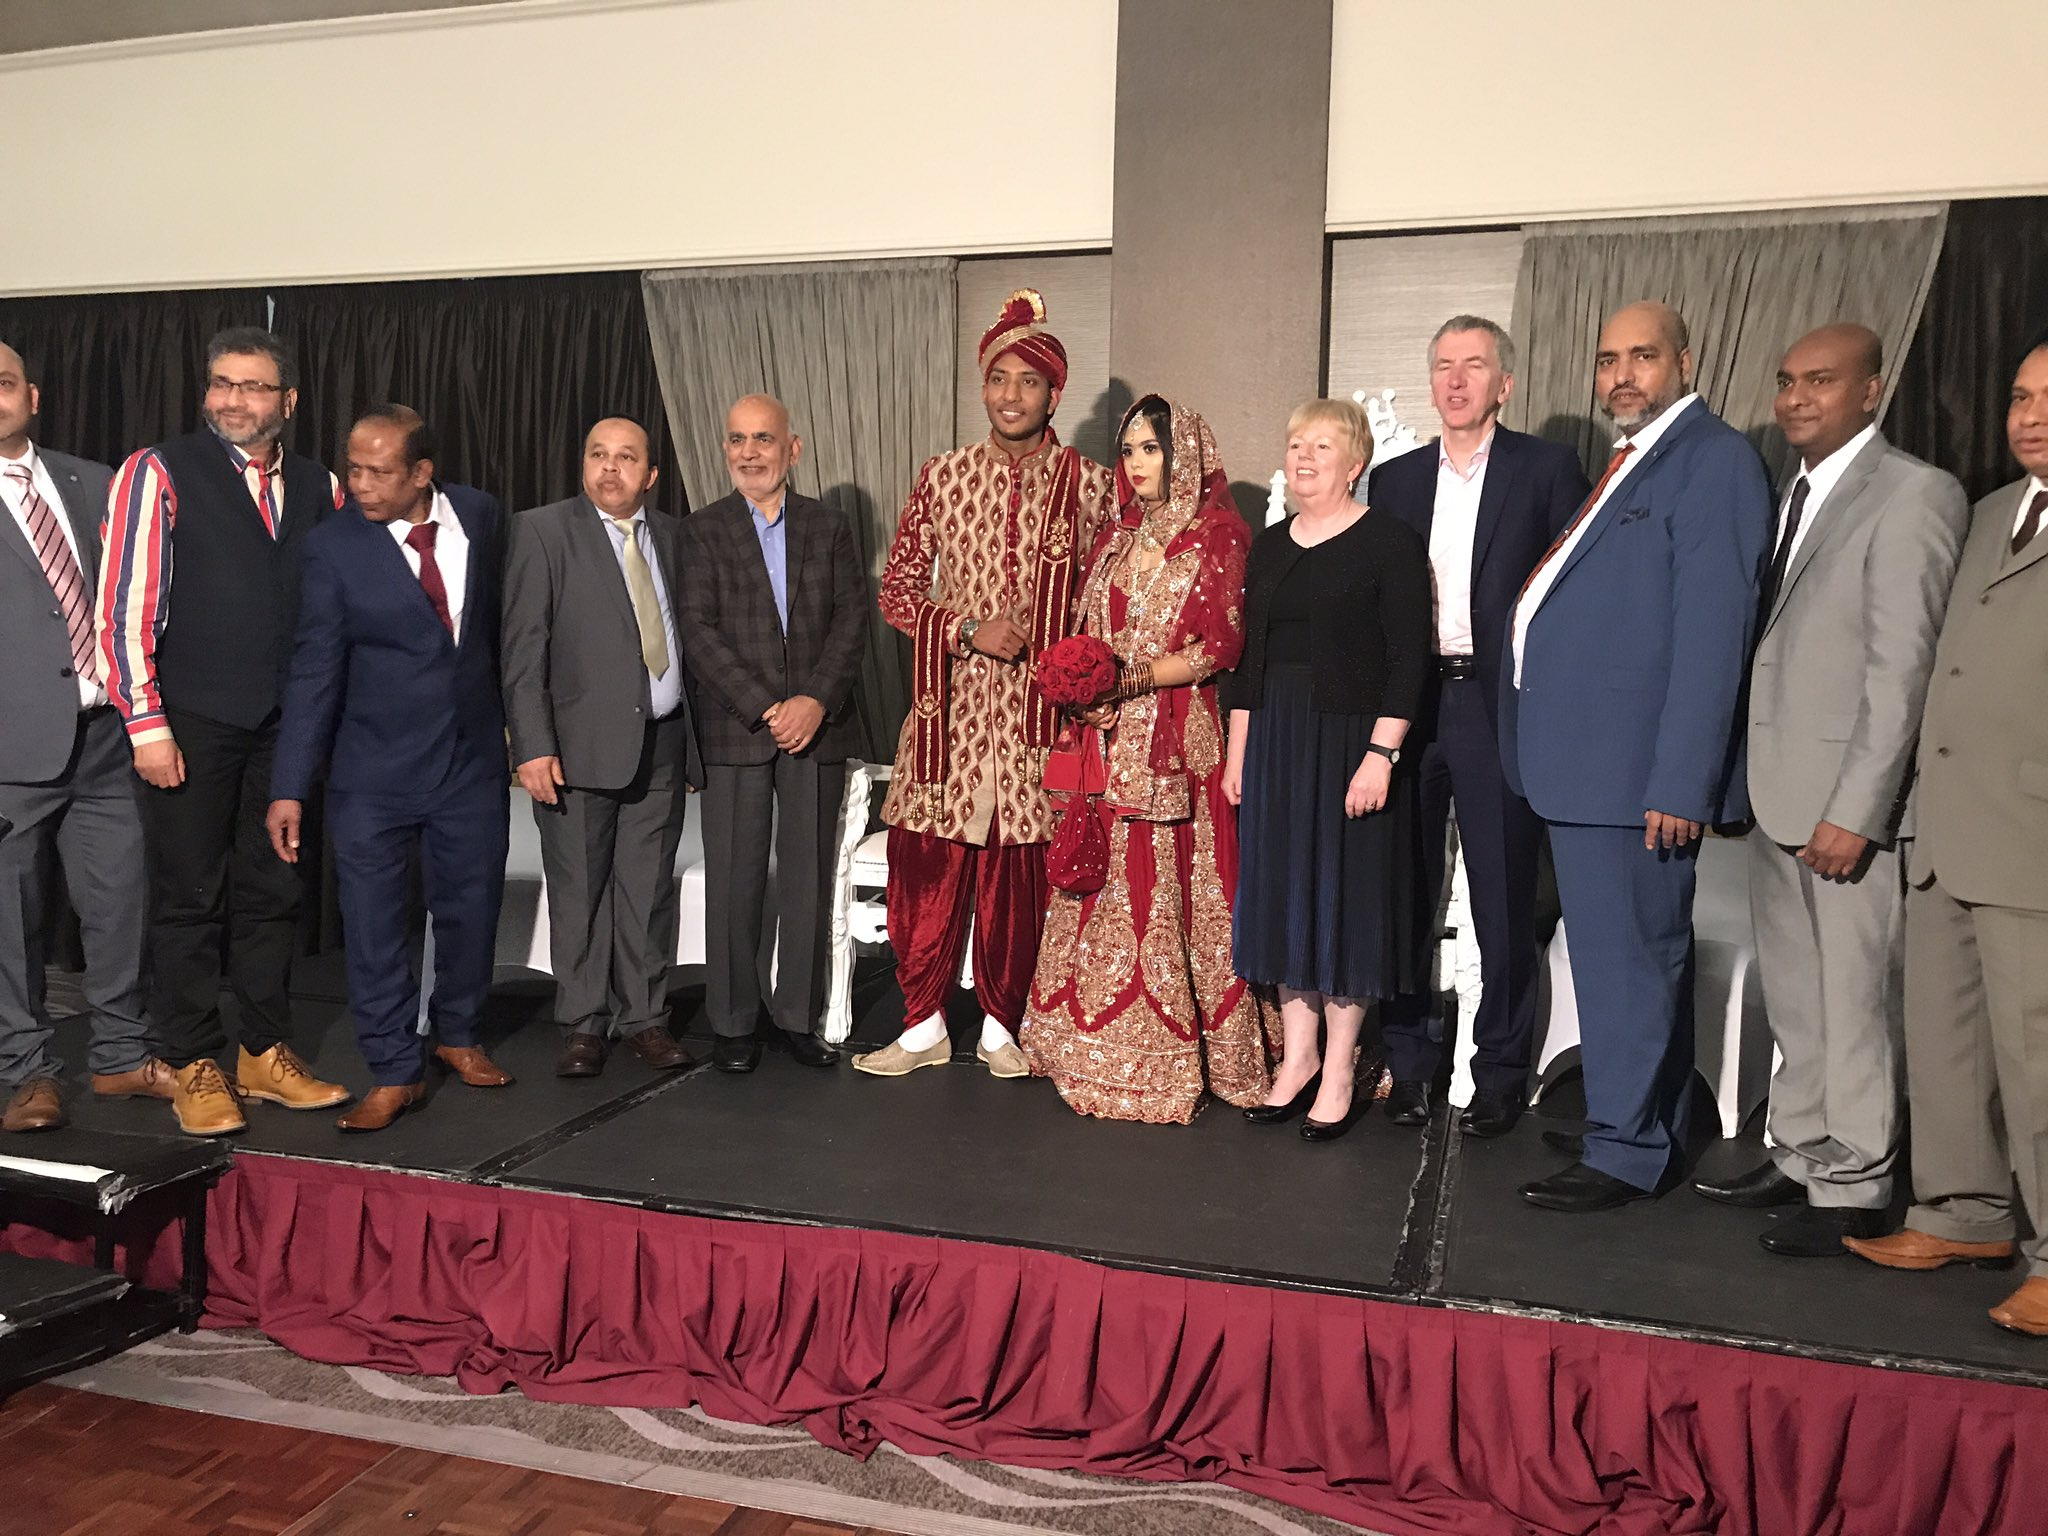 A treat & a privilege today to attend the first Bangladeshi wedding in Belfast. Congrats Nazrul Alam Raju & Tasnim Ali Go Maire Sibh Bhur Nuacht